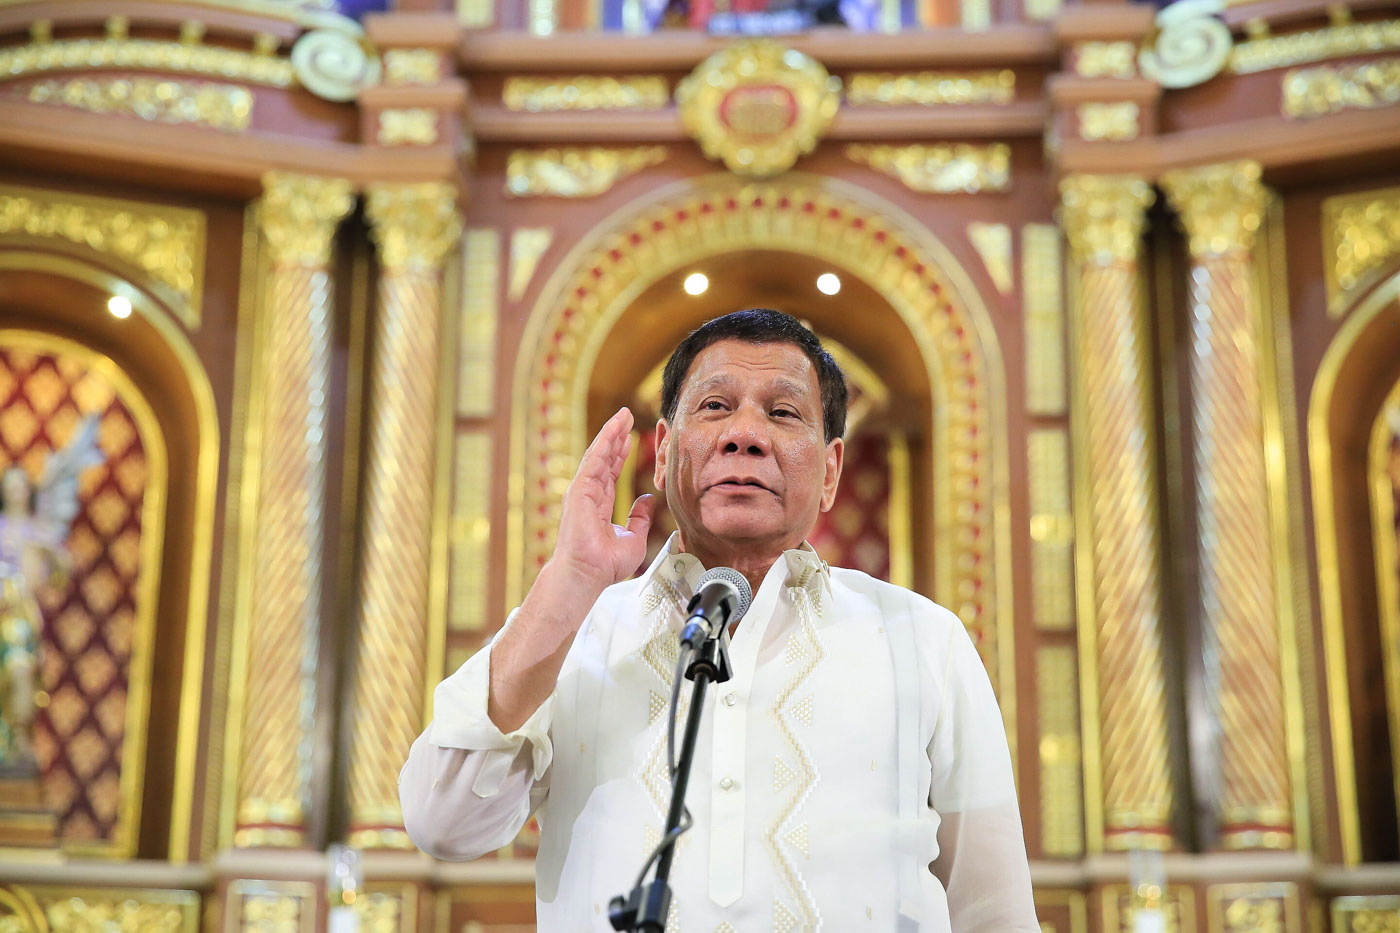 'IMPONDERABLES OF LIFE.' President Duterte muses about his own mortality and the possibility of resigning during recent public speeches. Malacau00f1ang file photo